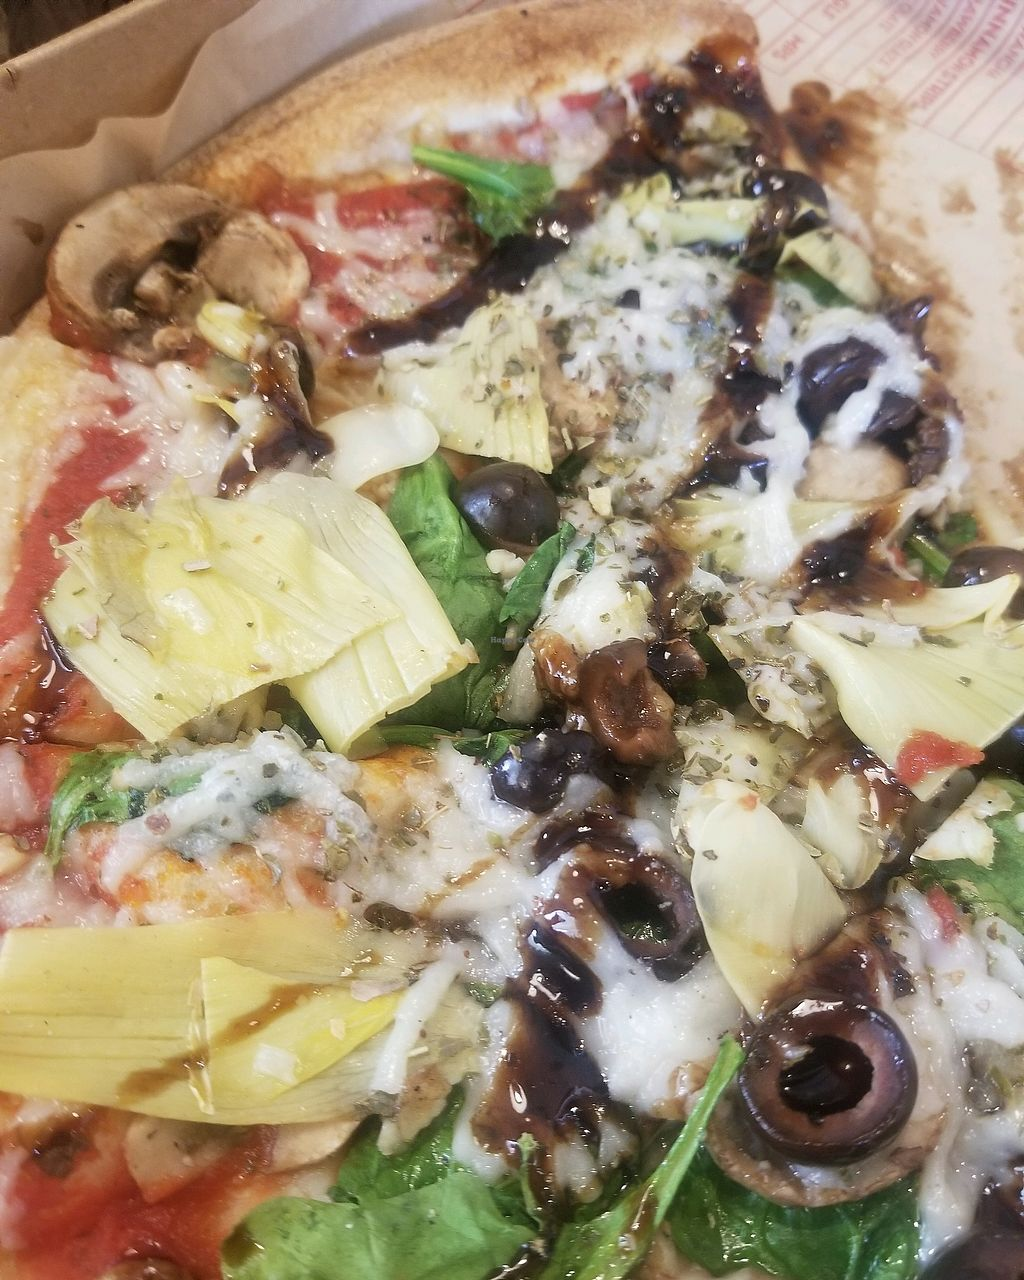 "Photo of Mod Pizza  by <a href=""/members/profile/RuthieRey"">RuthieRey</a> <br/>vegan pizza! <br/> April 21, 2018  - <a href='/contact/abuse/image/108891/389136'>Report</a>"